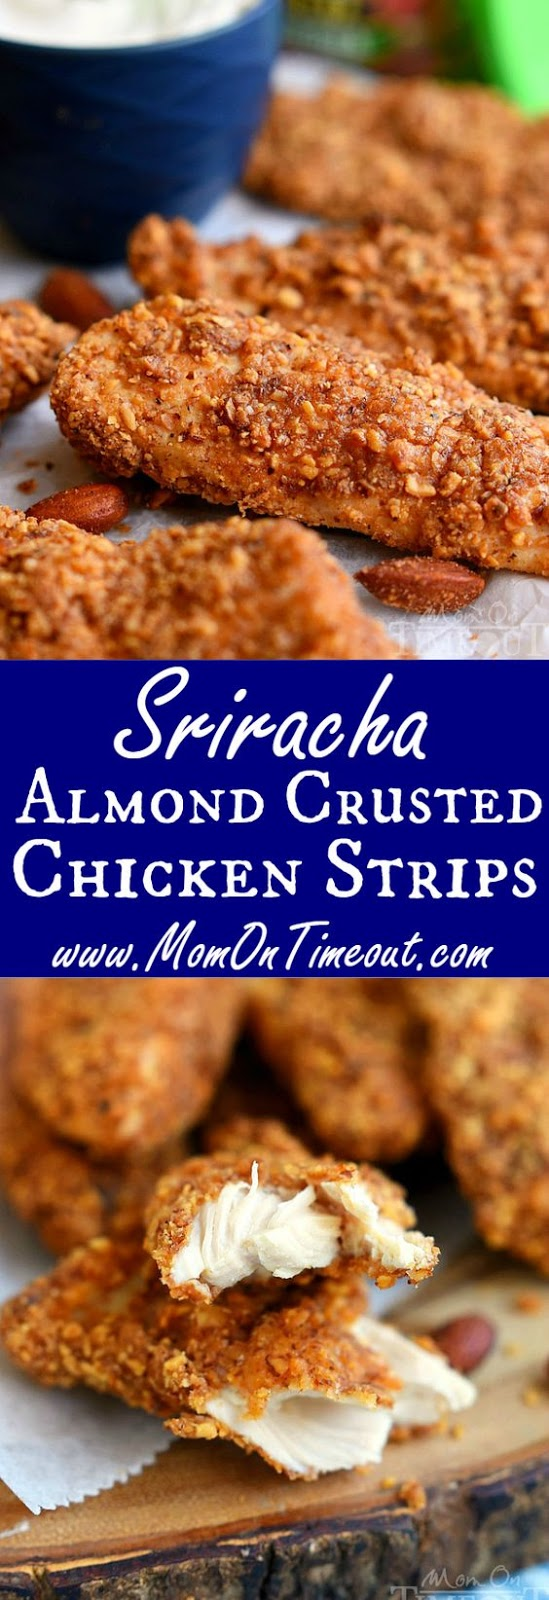 SRIRACHA ALMOND CRUSTED CHICKEN STRIPS #sriracha #almond #chicken #chickenrecipes #chickenstrip #dinnerideas #dinnerrecipes #easydinnerrecipes